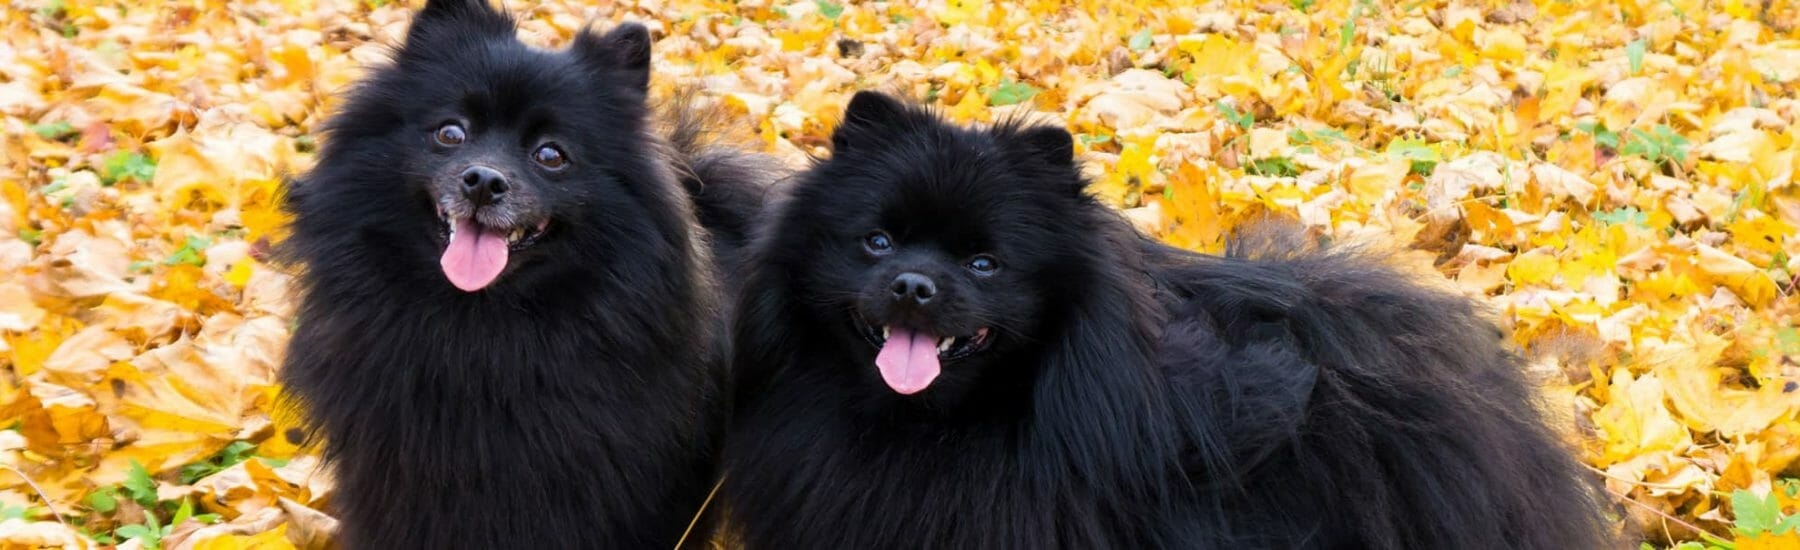 Two black dogs standing on leaves